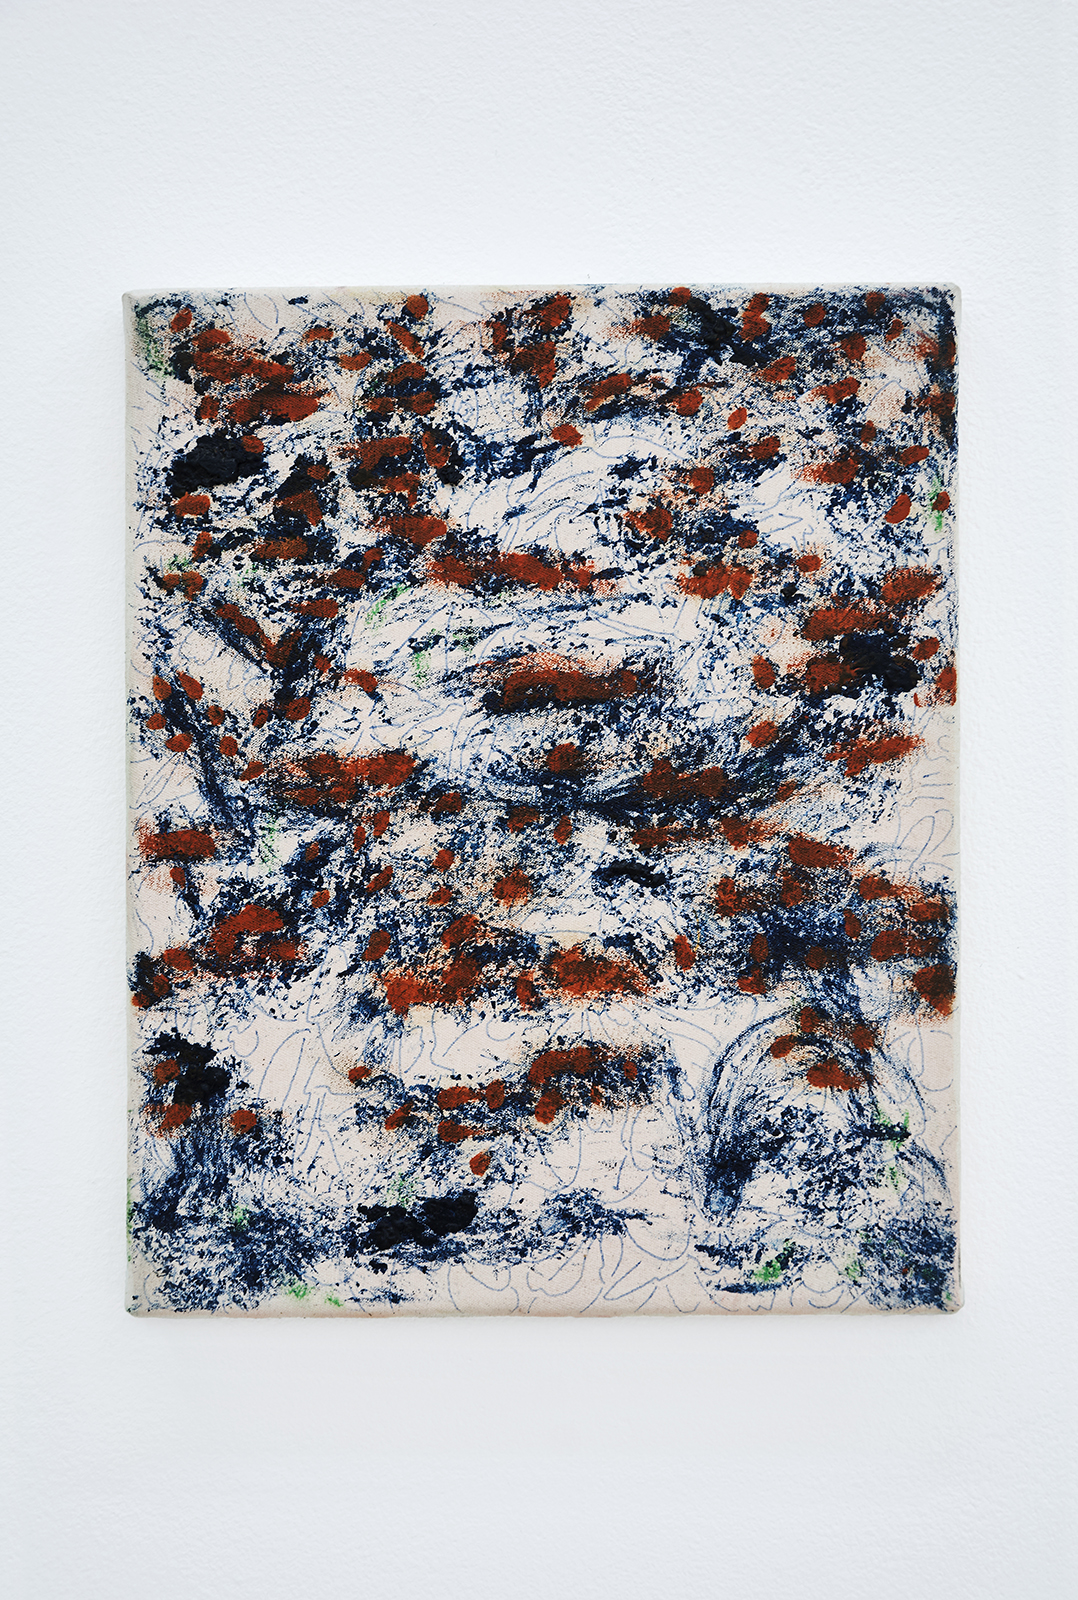 Anna Schachinger, Untitled, 2013. Ink and oil on canvas, 22 x 27 cm (8.5 x 10.5 in.)